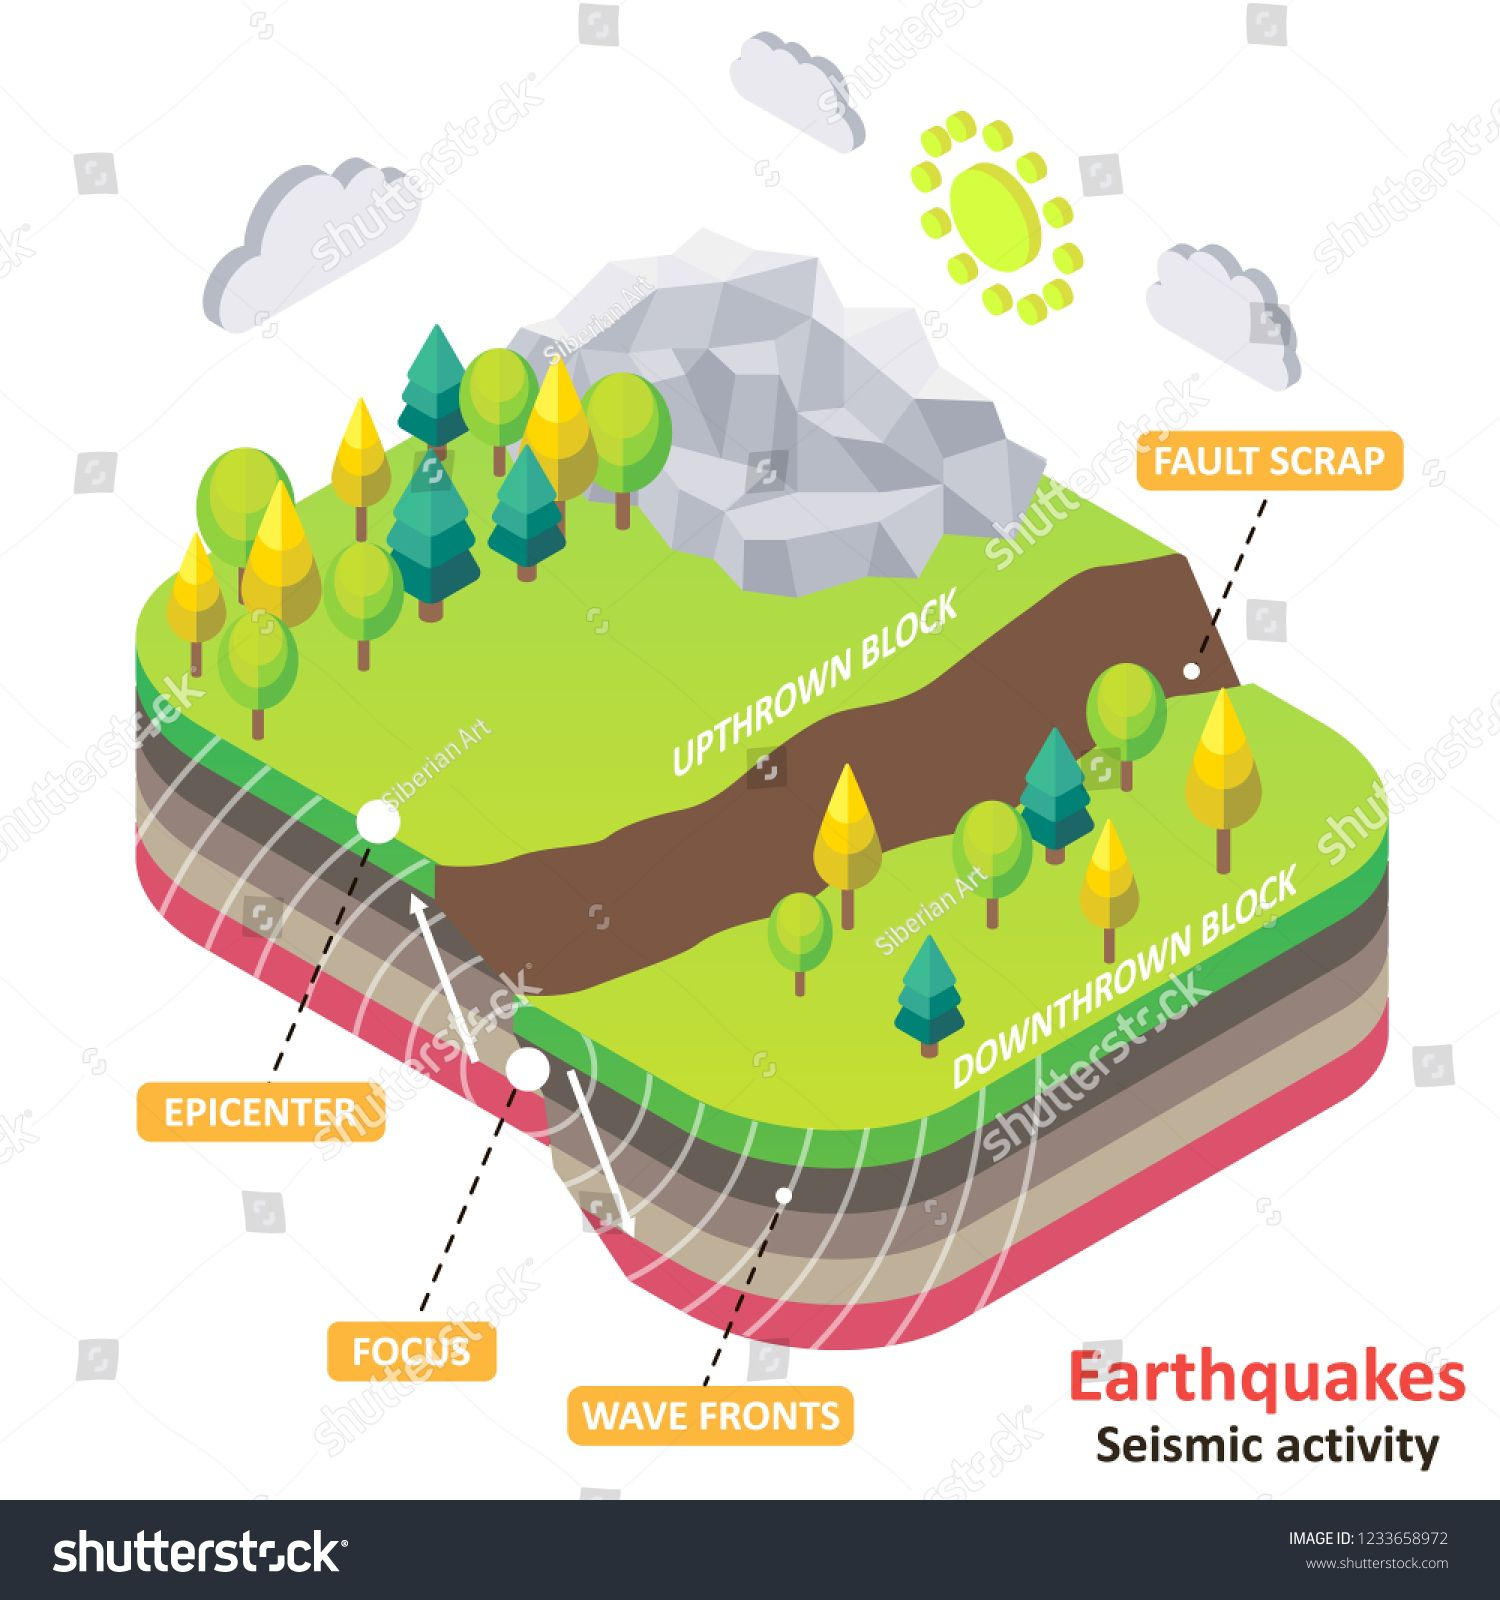 Earthquake Diagram Vector Isometric Earth Fault Scrap With